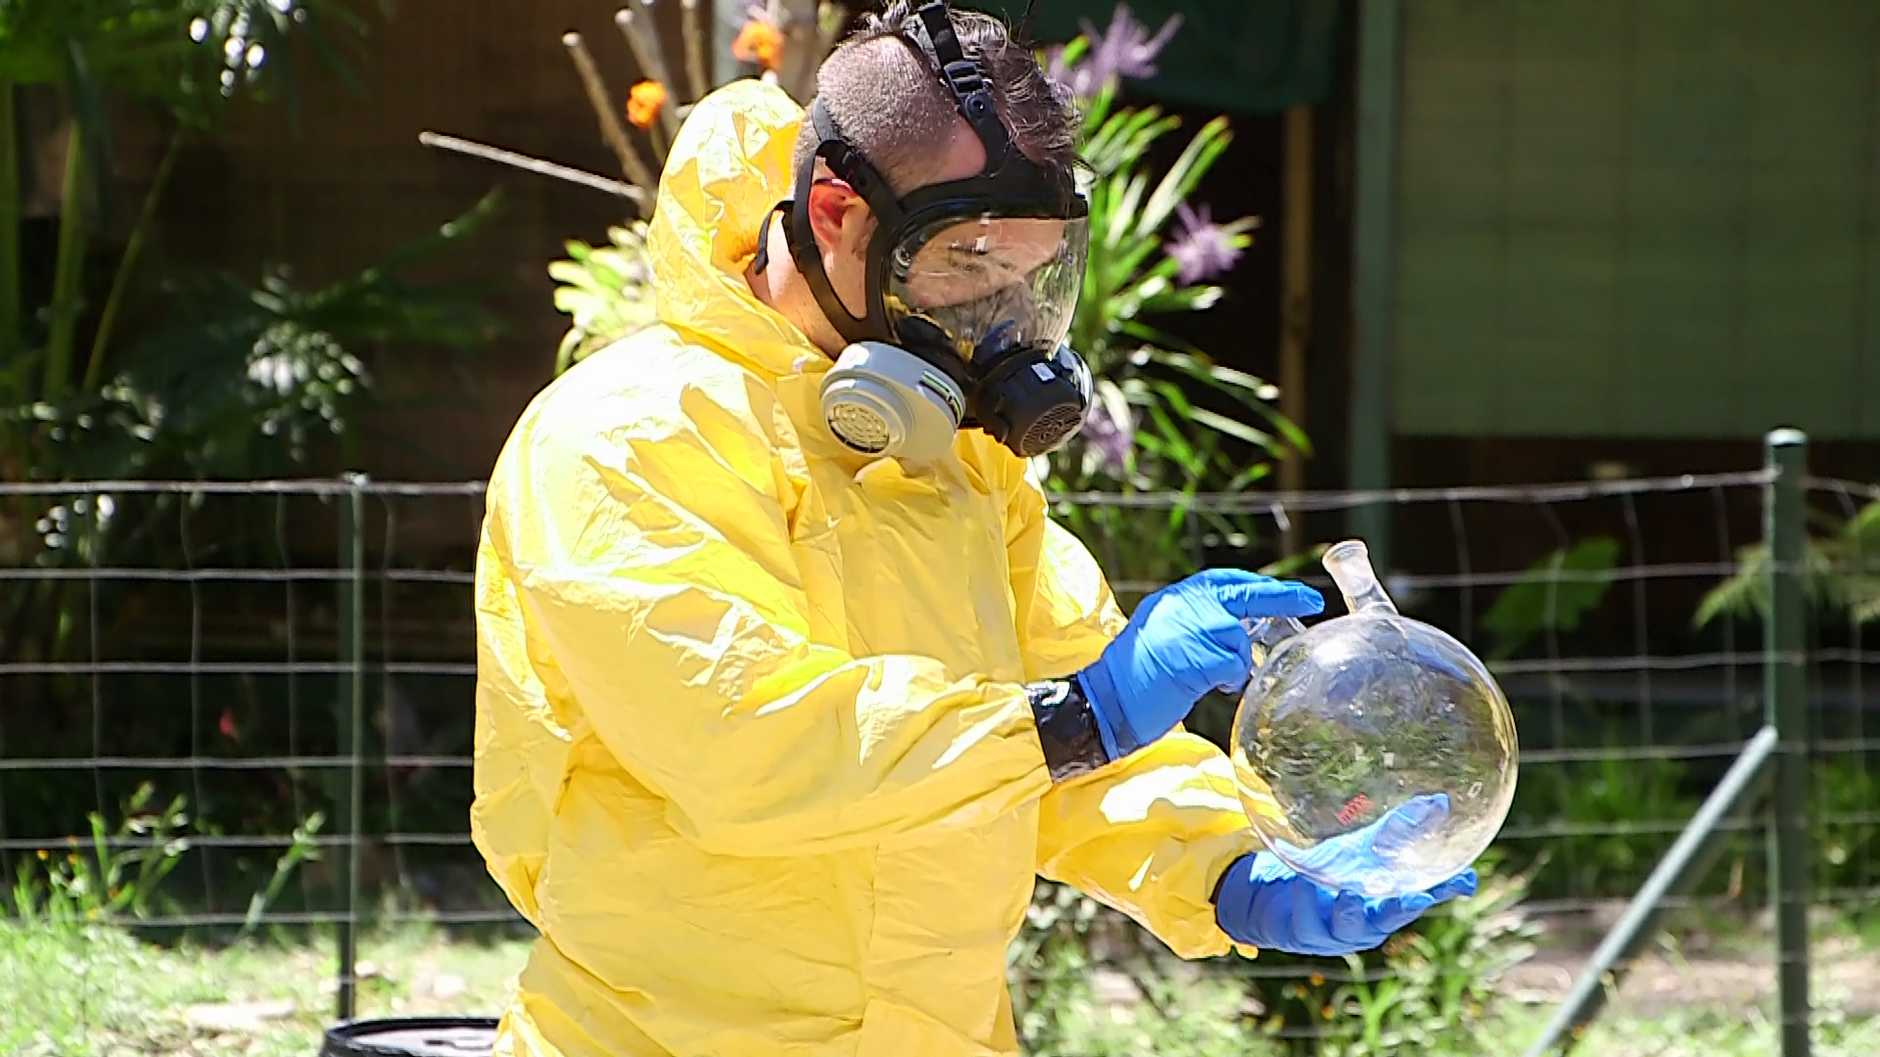 Police allegedly uncovered a meth lab and illegal guns in raids on adjoining properties at Thora today.